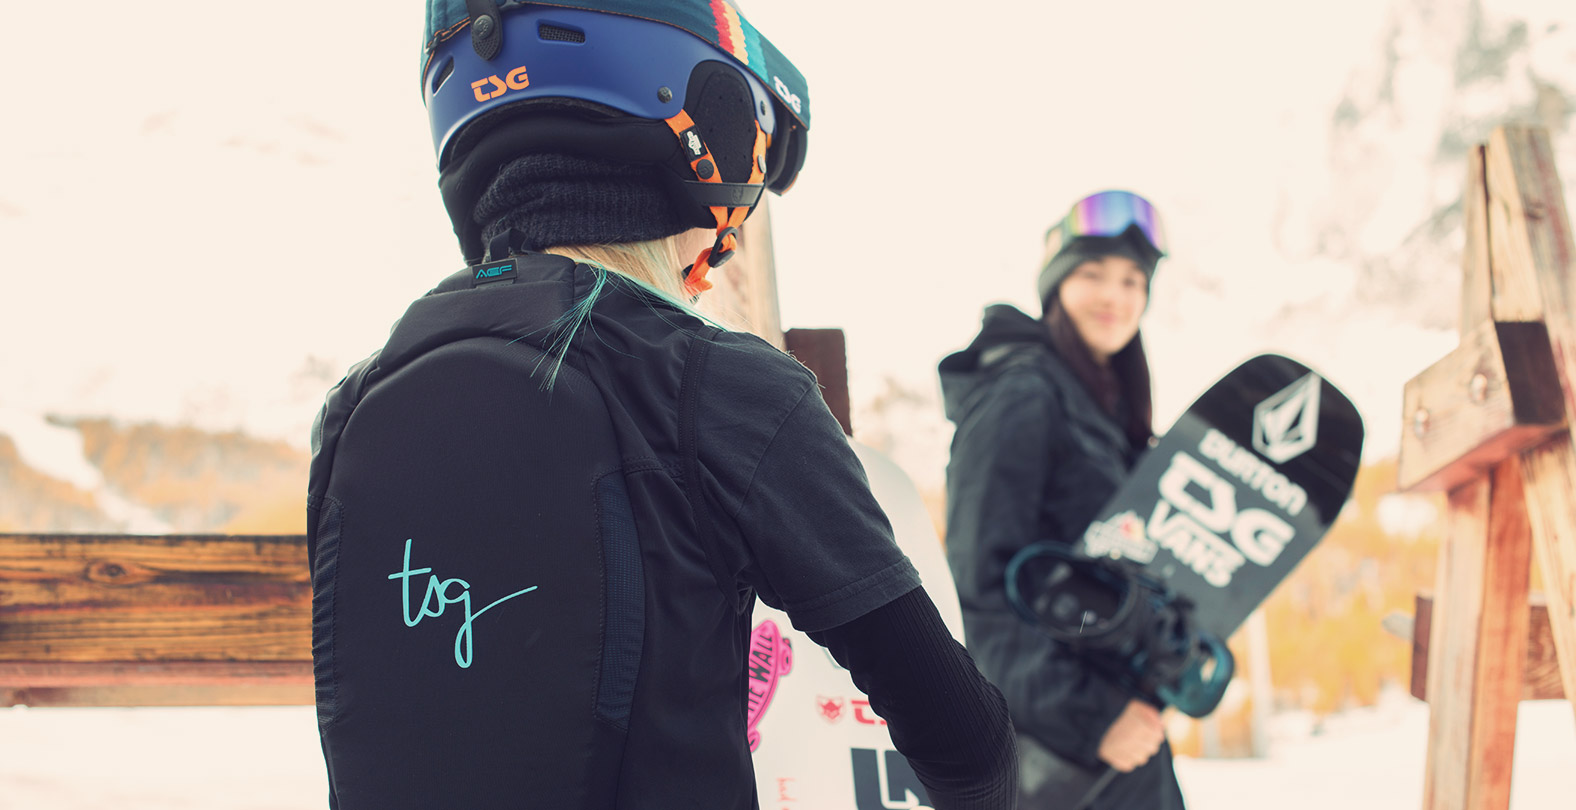 snowboarder with back protector